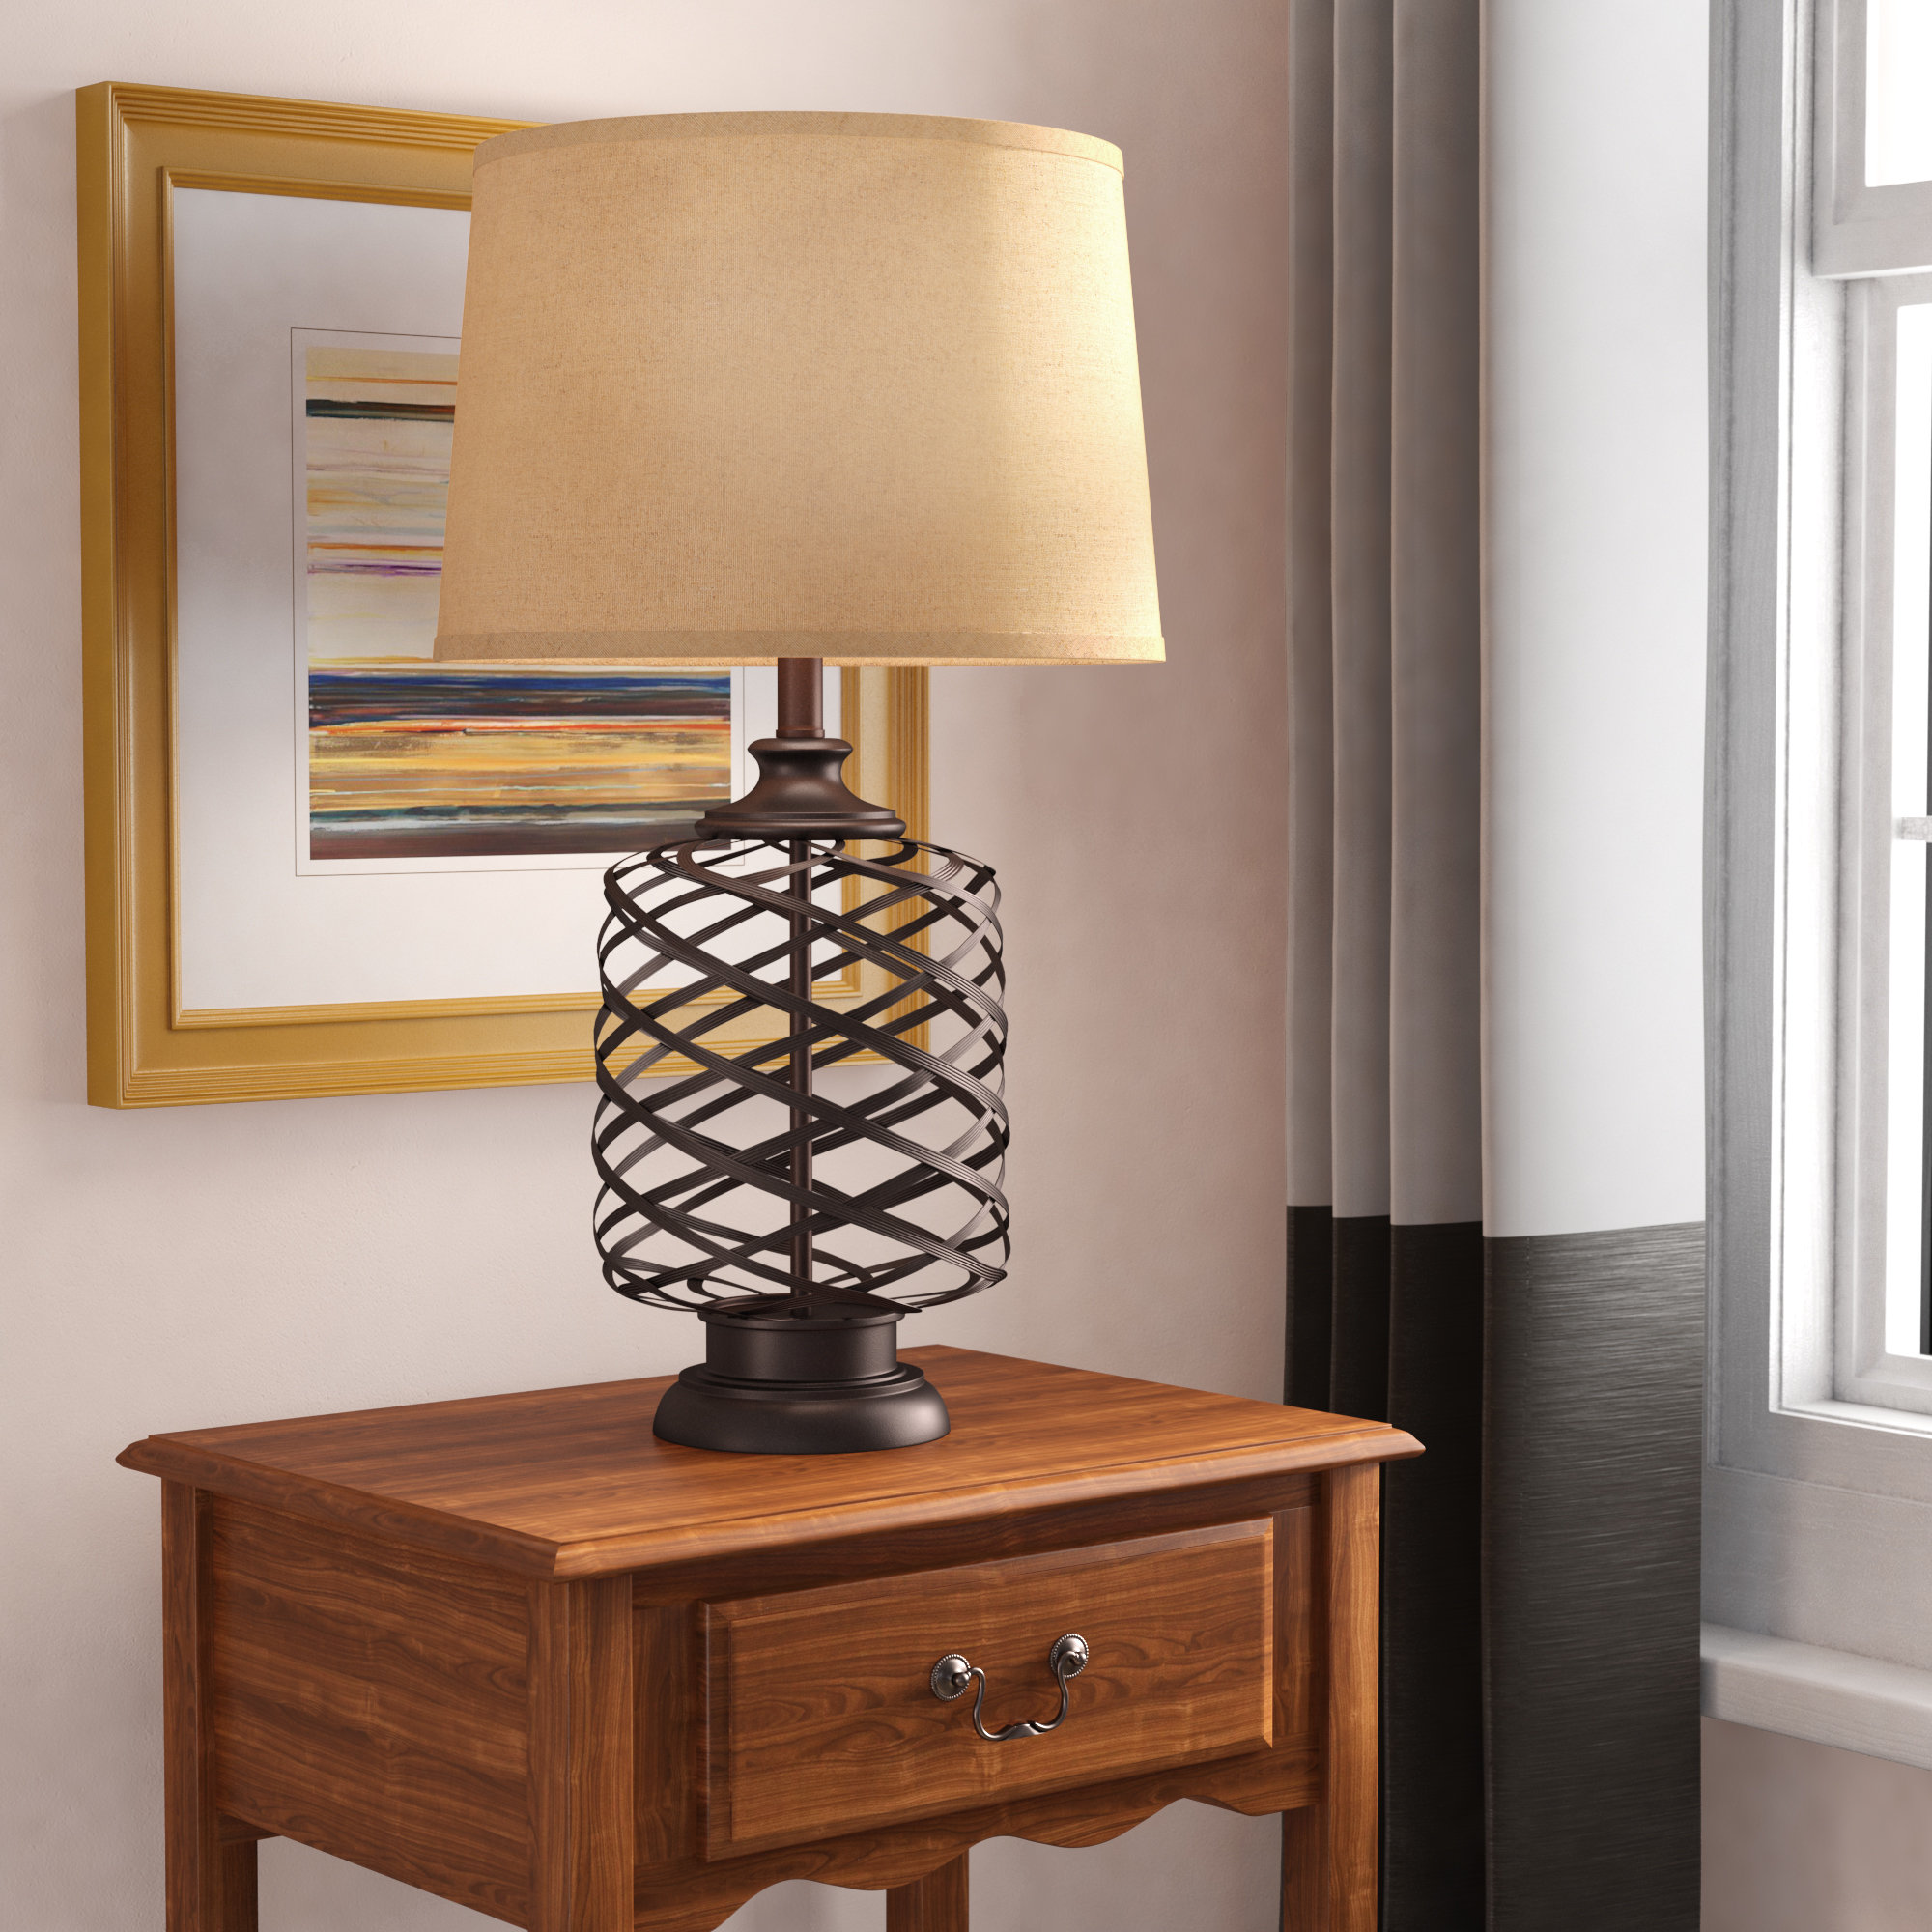 adline table lamp reviews birch lane bedford jute rope accent vintage mirror coffee drum tables living room glass top corner seagrass battery operated light fixtures round side